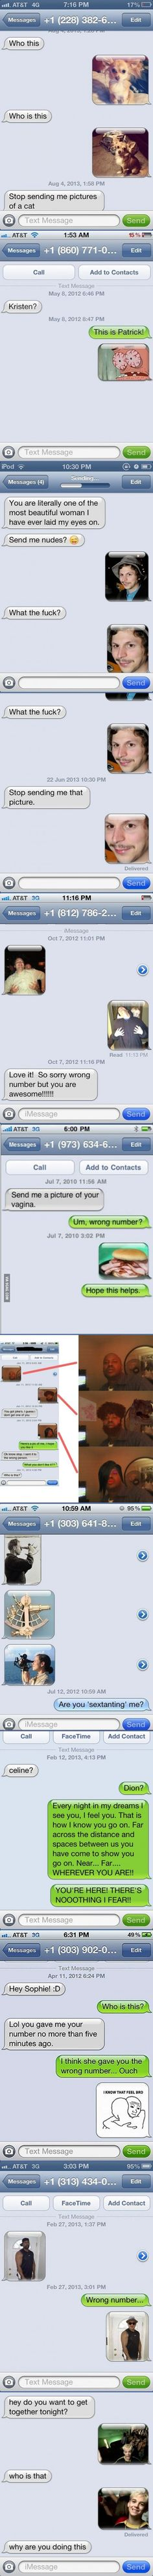 11 Perfect Ways To Respond To A Wrong Number Text Visit roflburger.com for more funny awesomeness